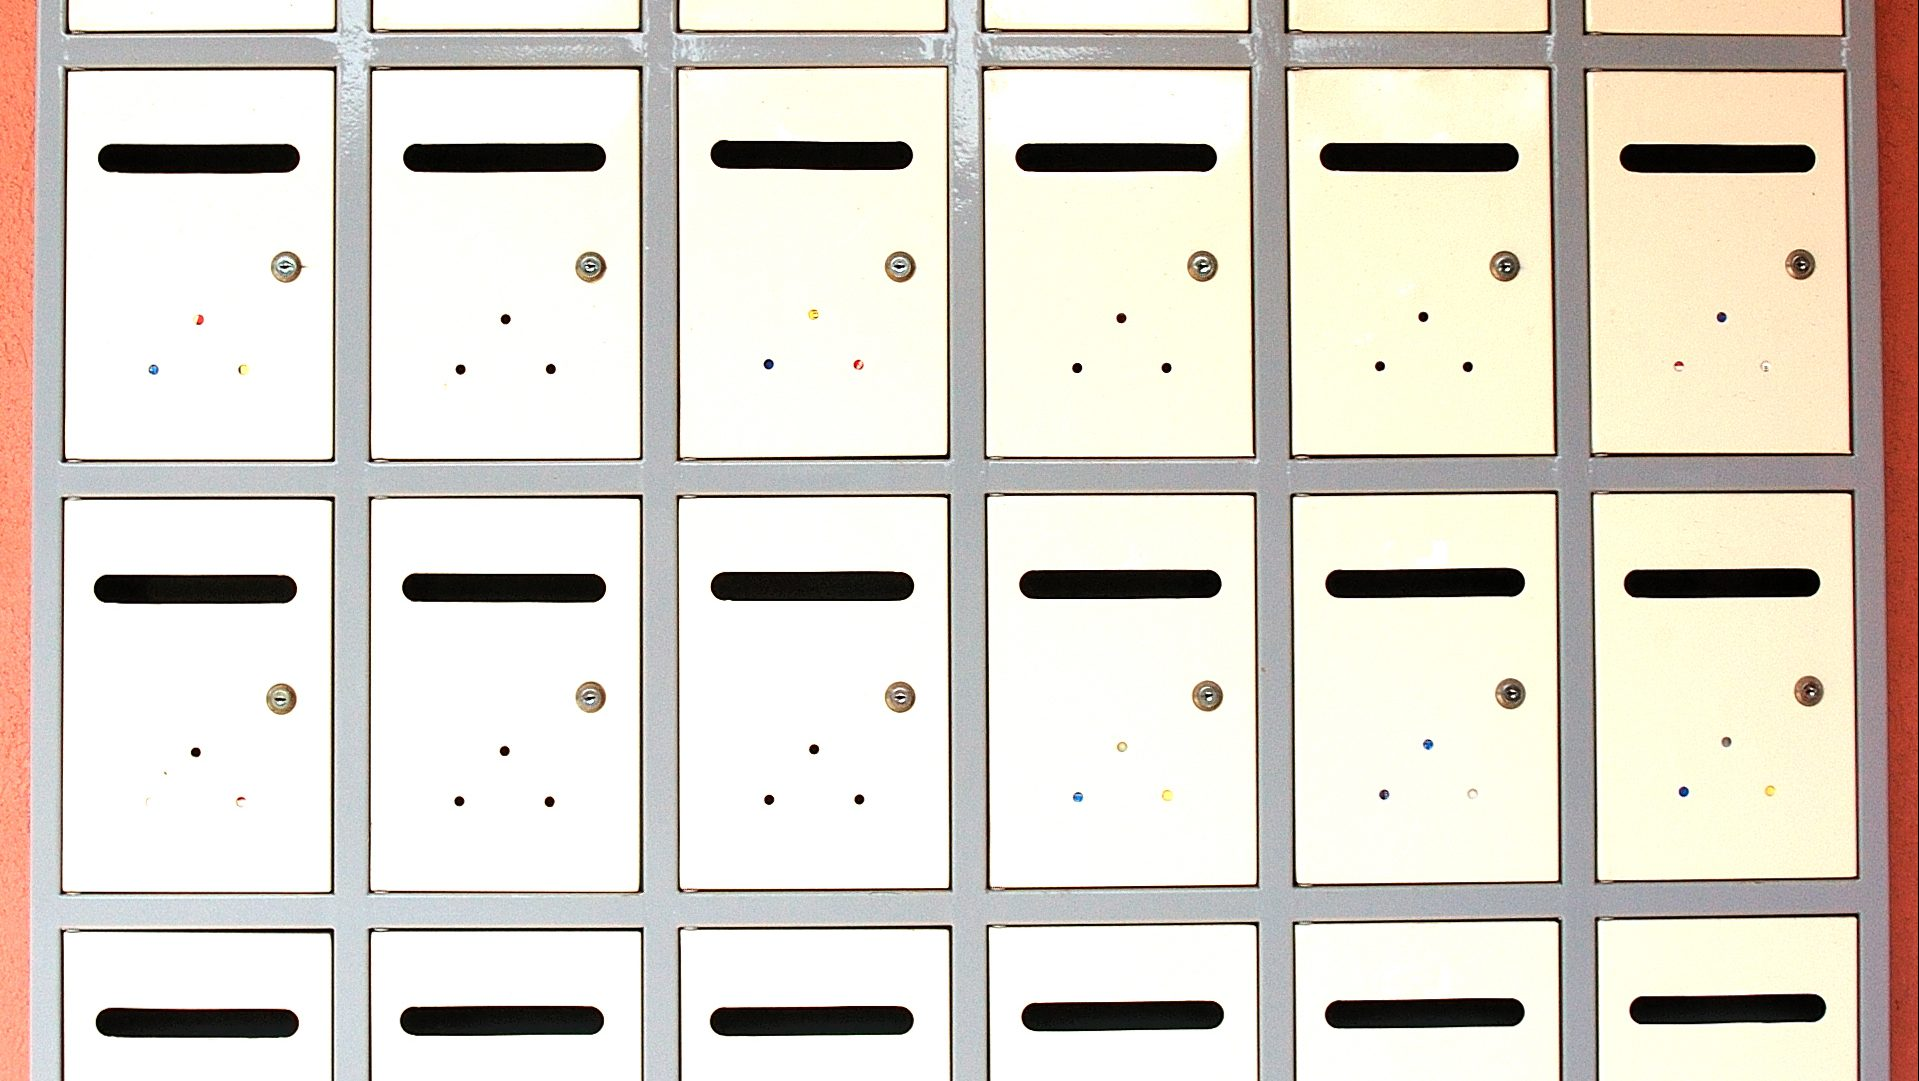 More than 150 charges against Surrey pair in apartment mailbox ...